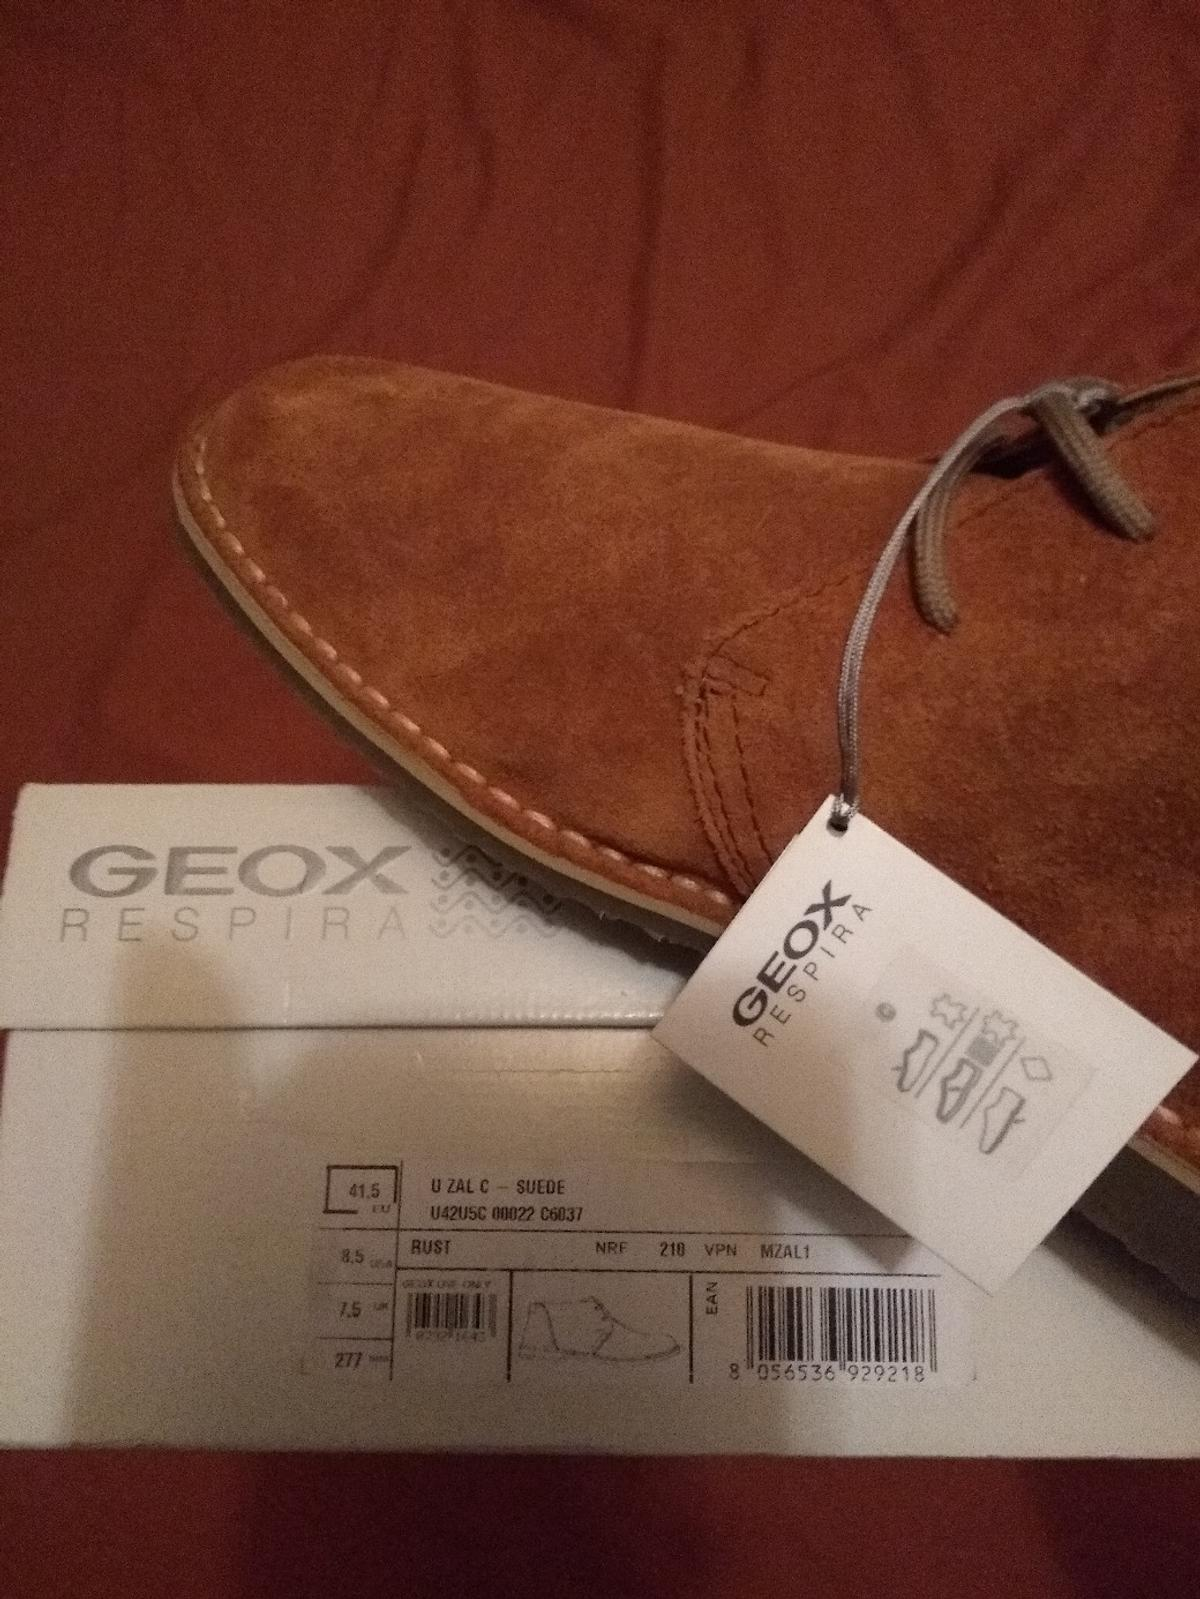 Geox Shoes Brand New with Box Size 7.5 in S1 Sheffield für